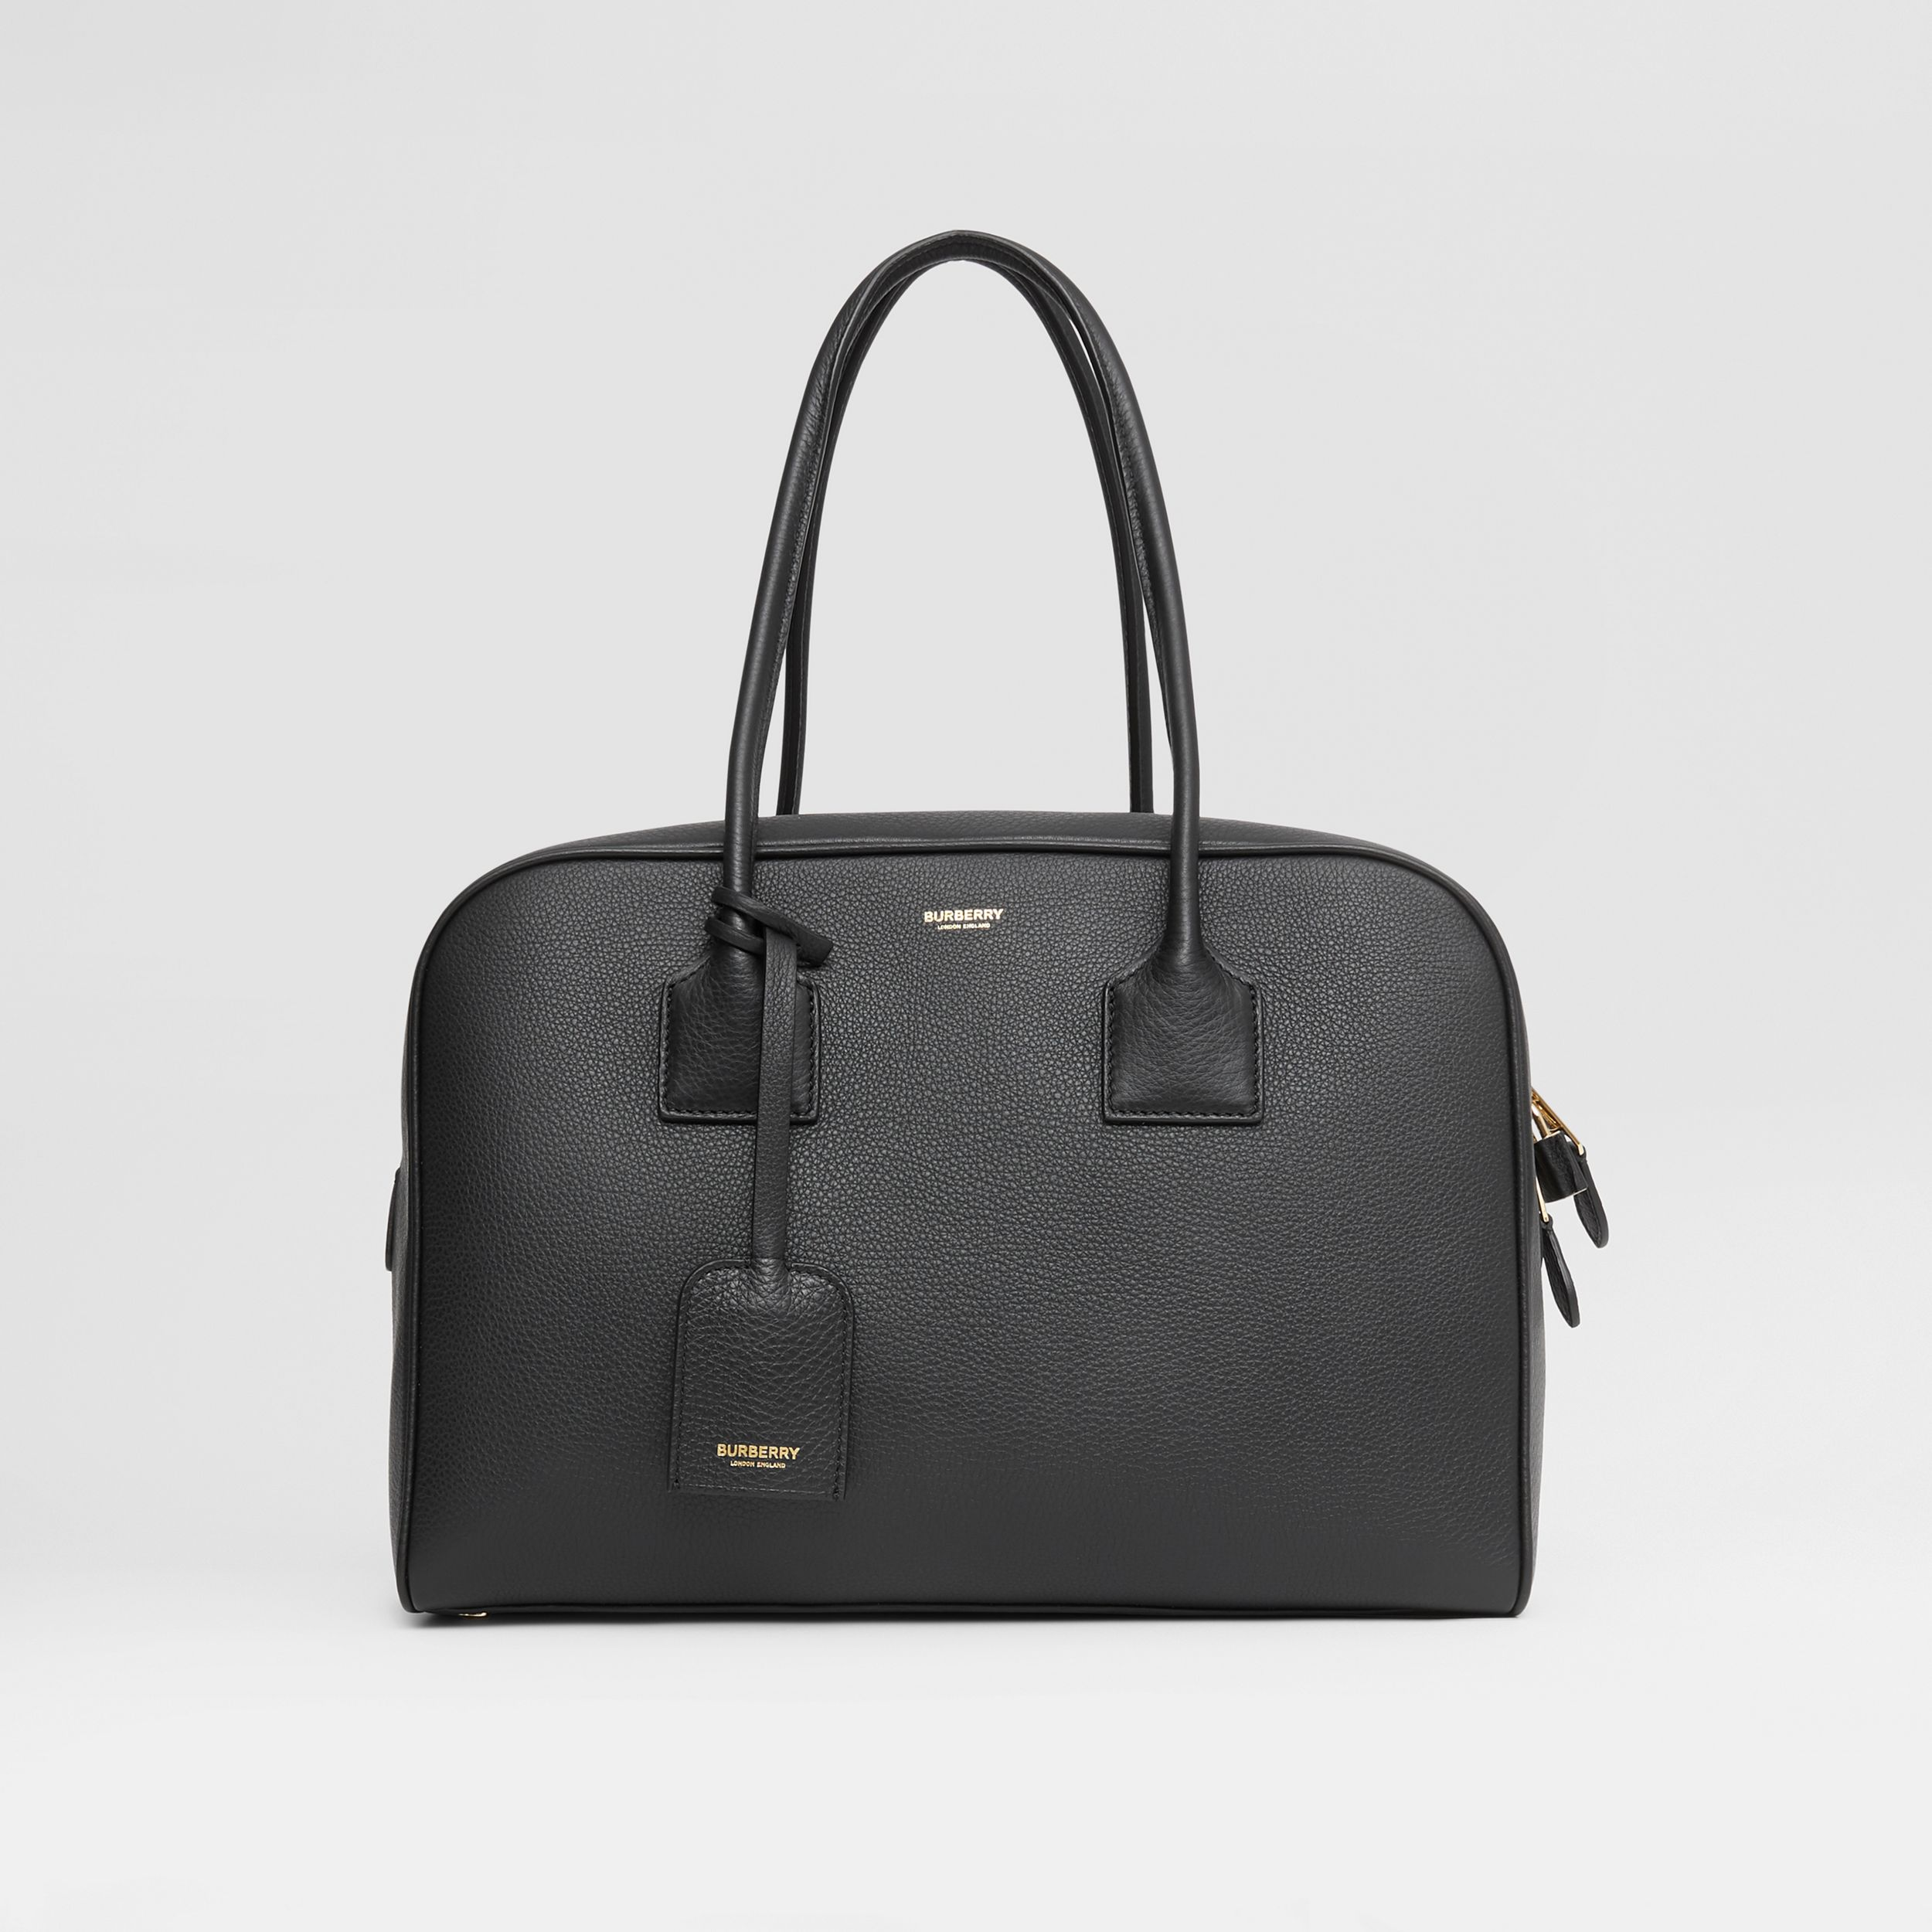 Large Leather Half Cube Bag in Black - Women | Burberry Hong Kong S.A.R. - 1